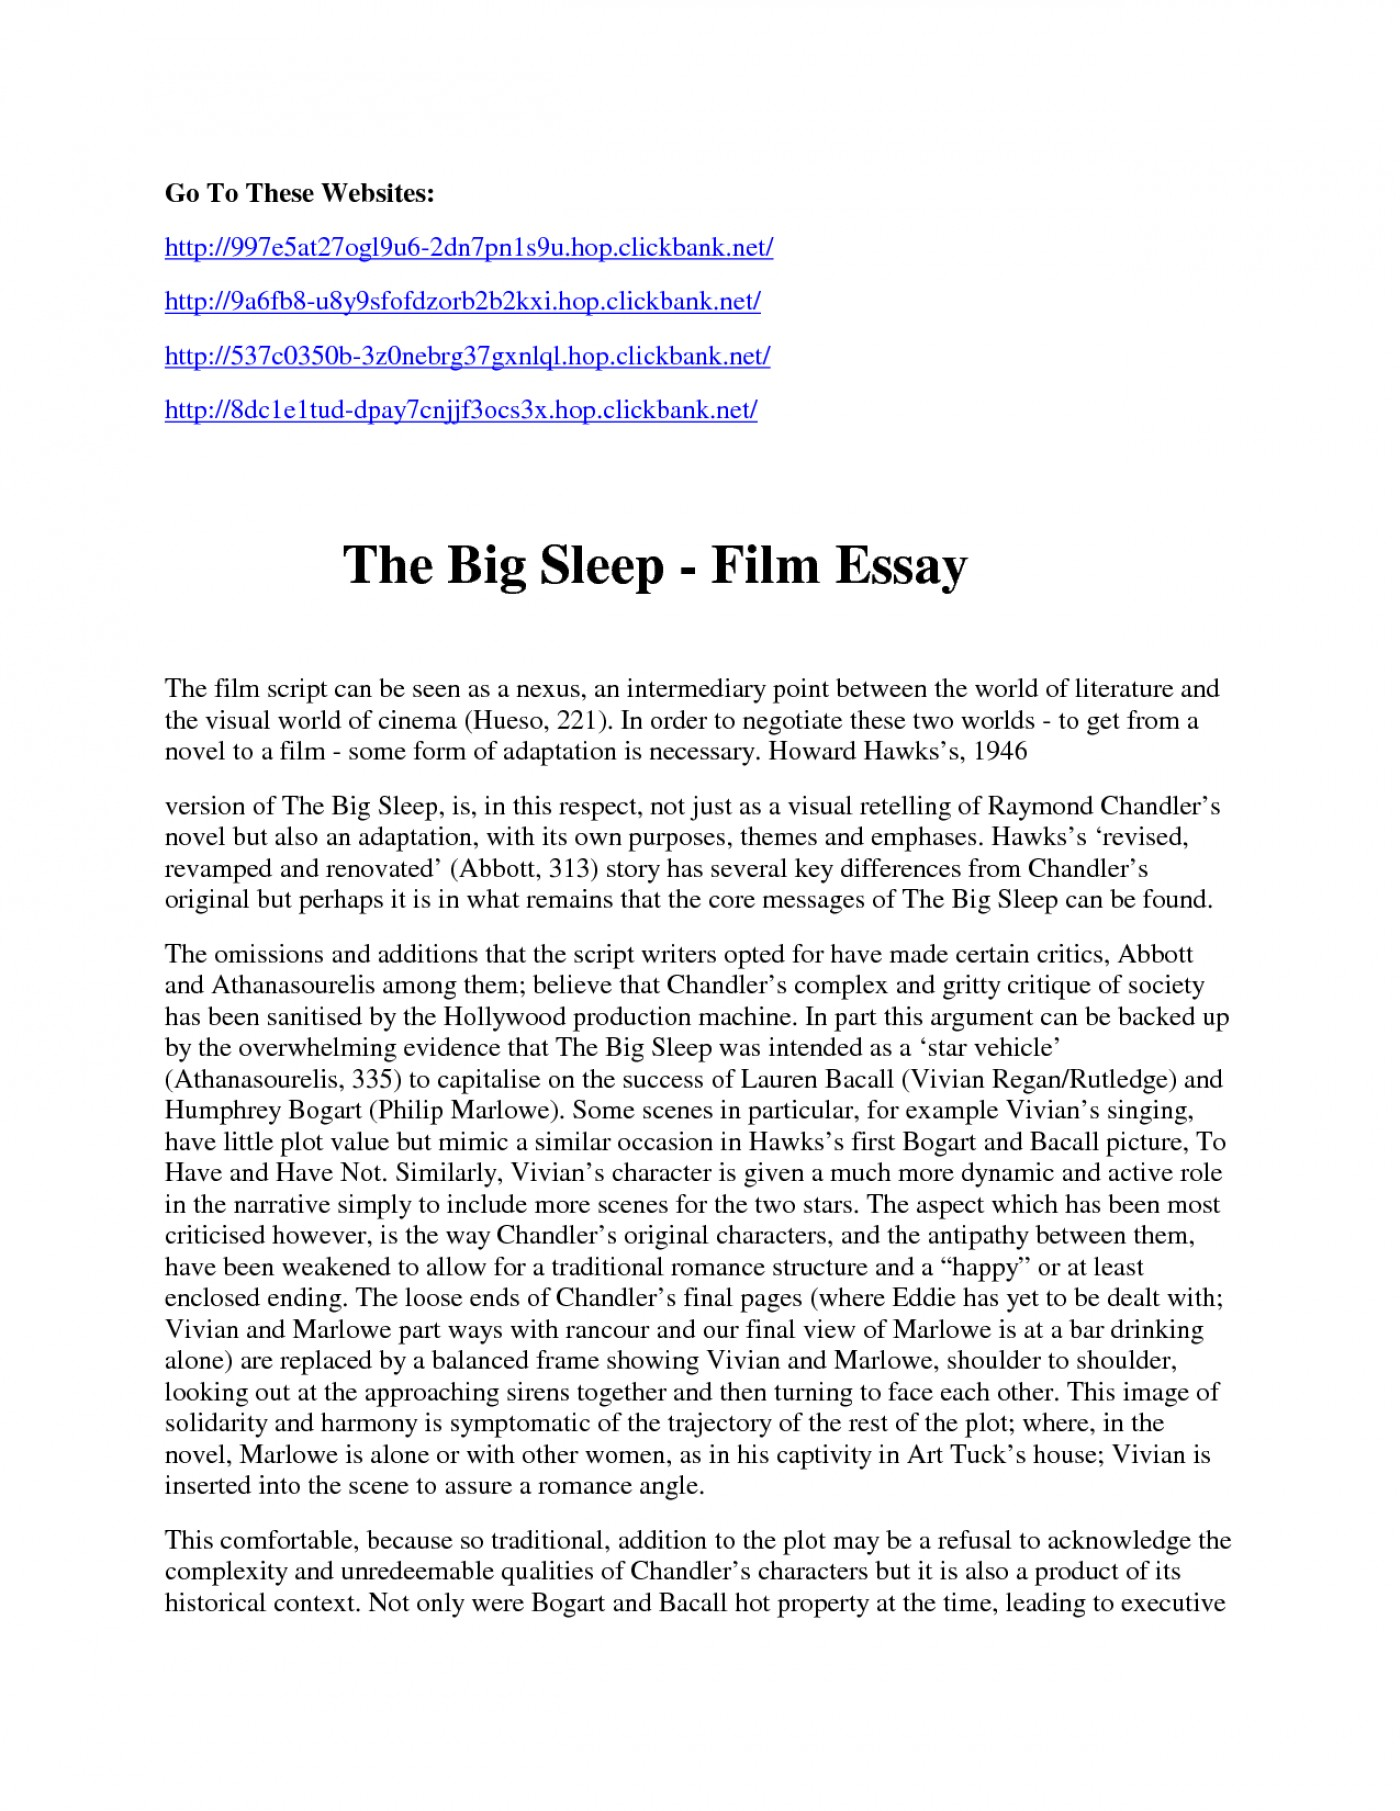 Fifty best extended essays